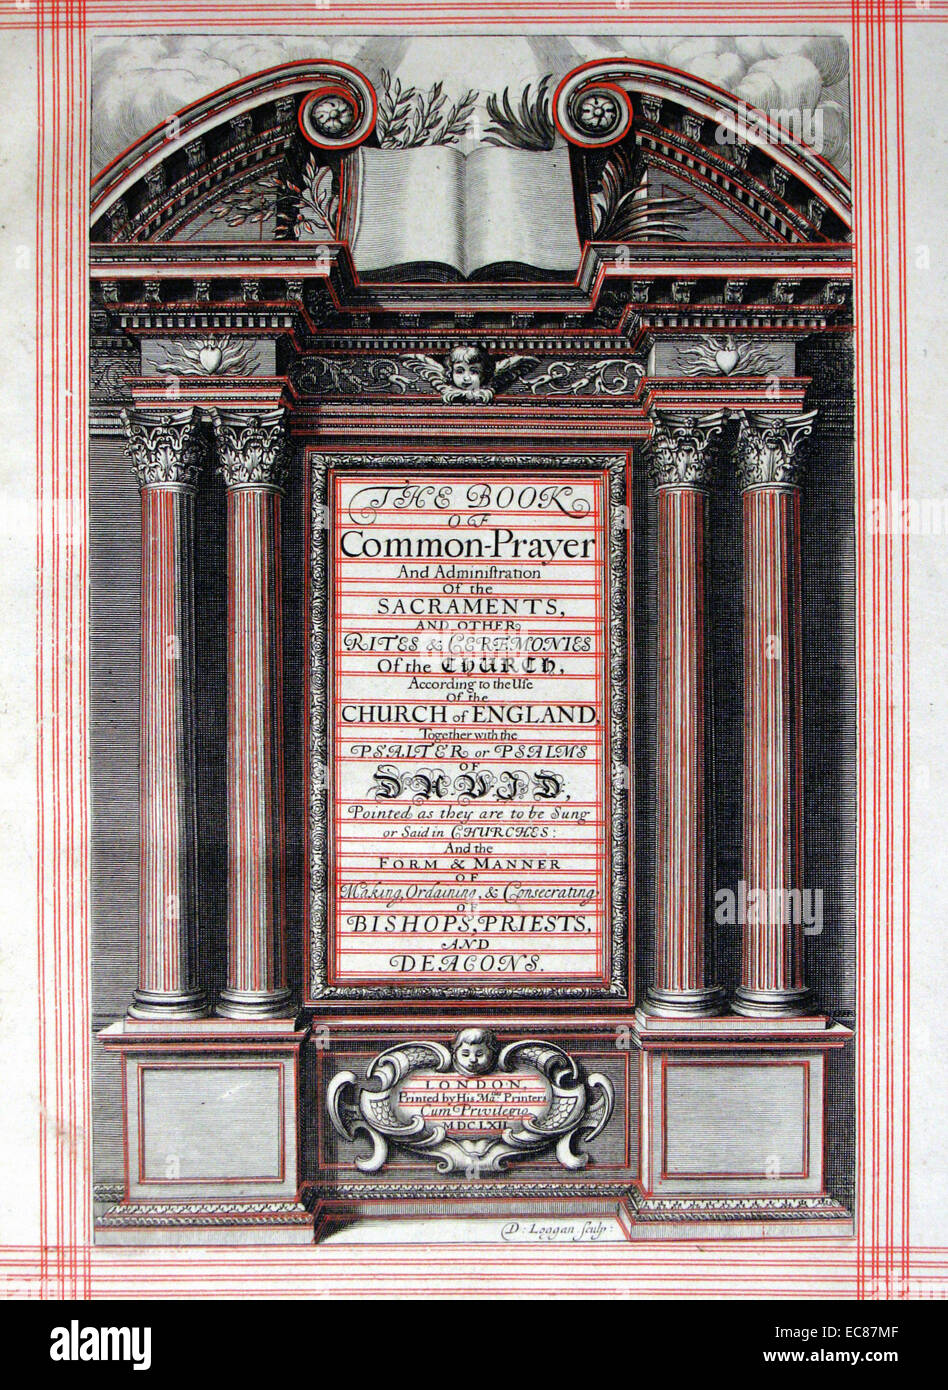 Frontispiece from the Book of Common Prayer. Dated 17th Century - Stock Image